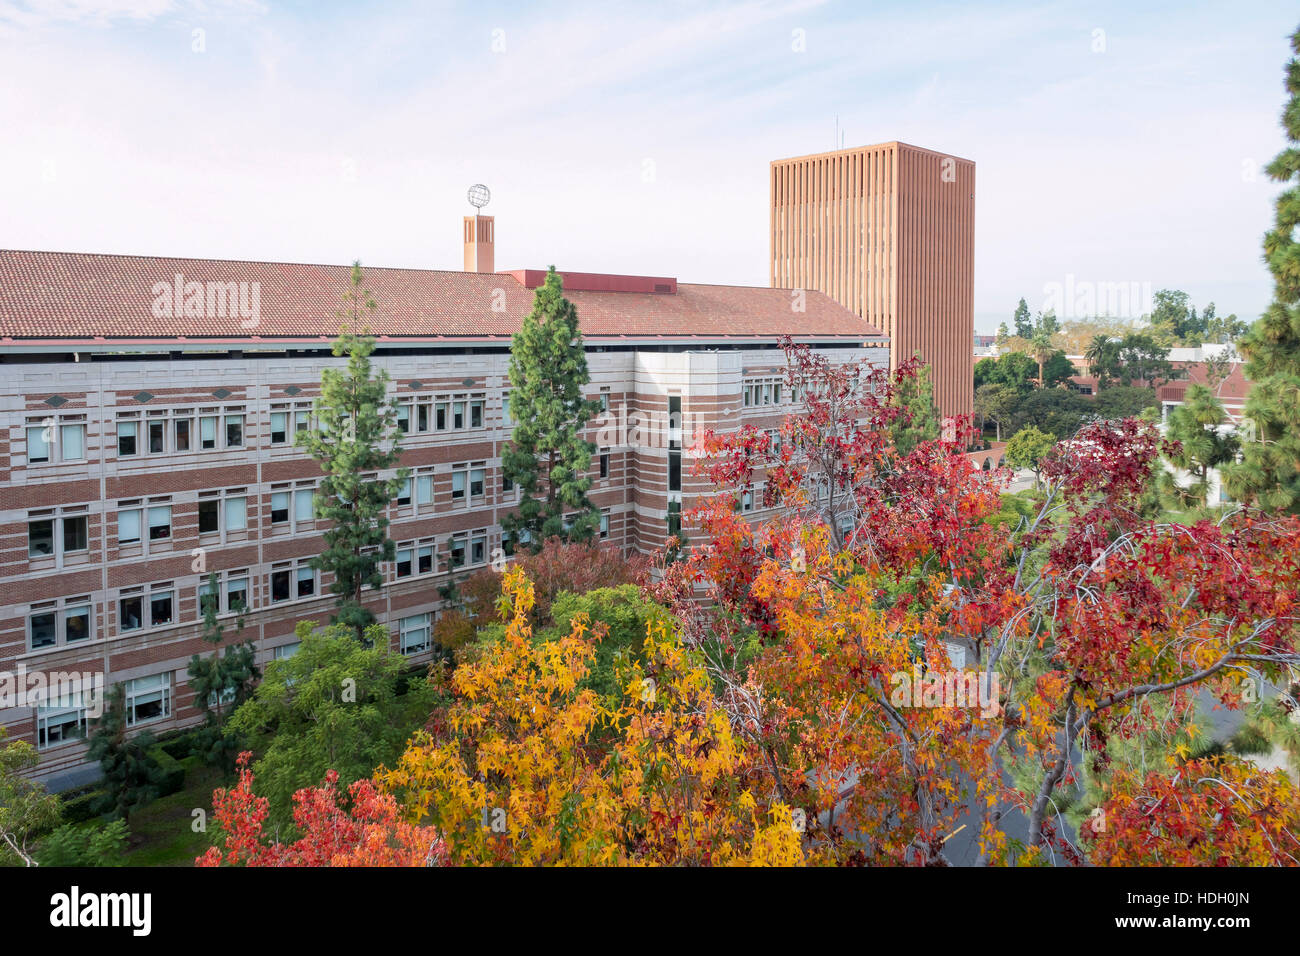 Los Angeles, DEC 9: Campus of the University of Southern California on DEC 9, 2016 at Los Angeles - Stock Image